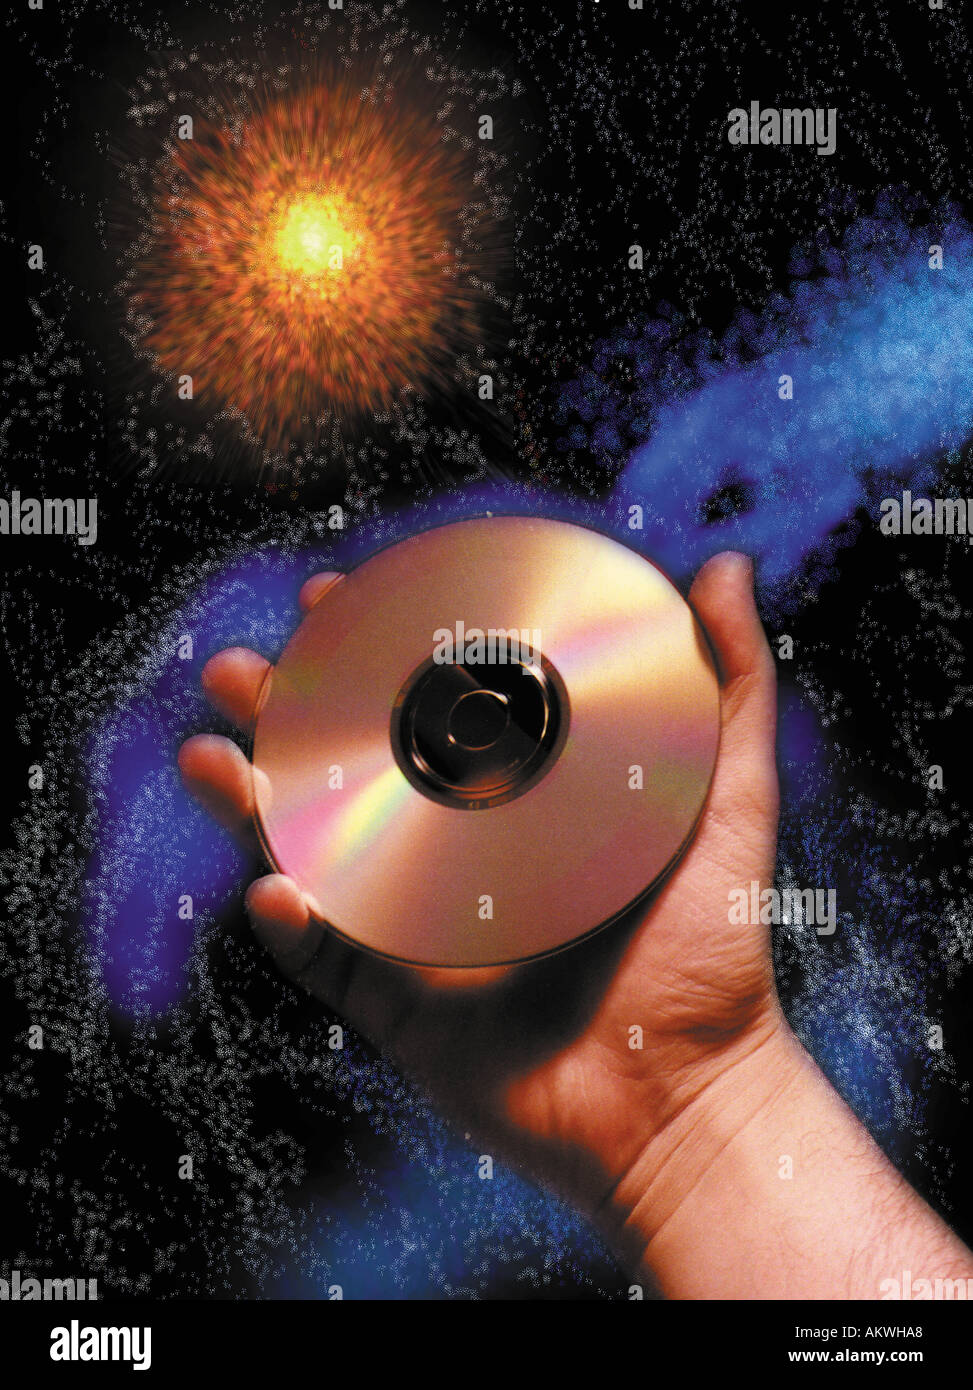 compact disks cd s floating in space concept abstract photo illustration - Stock Image